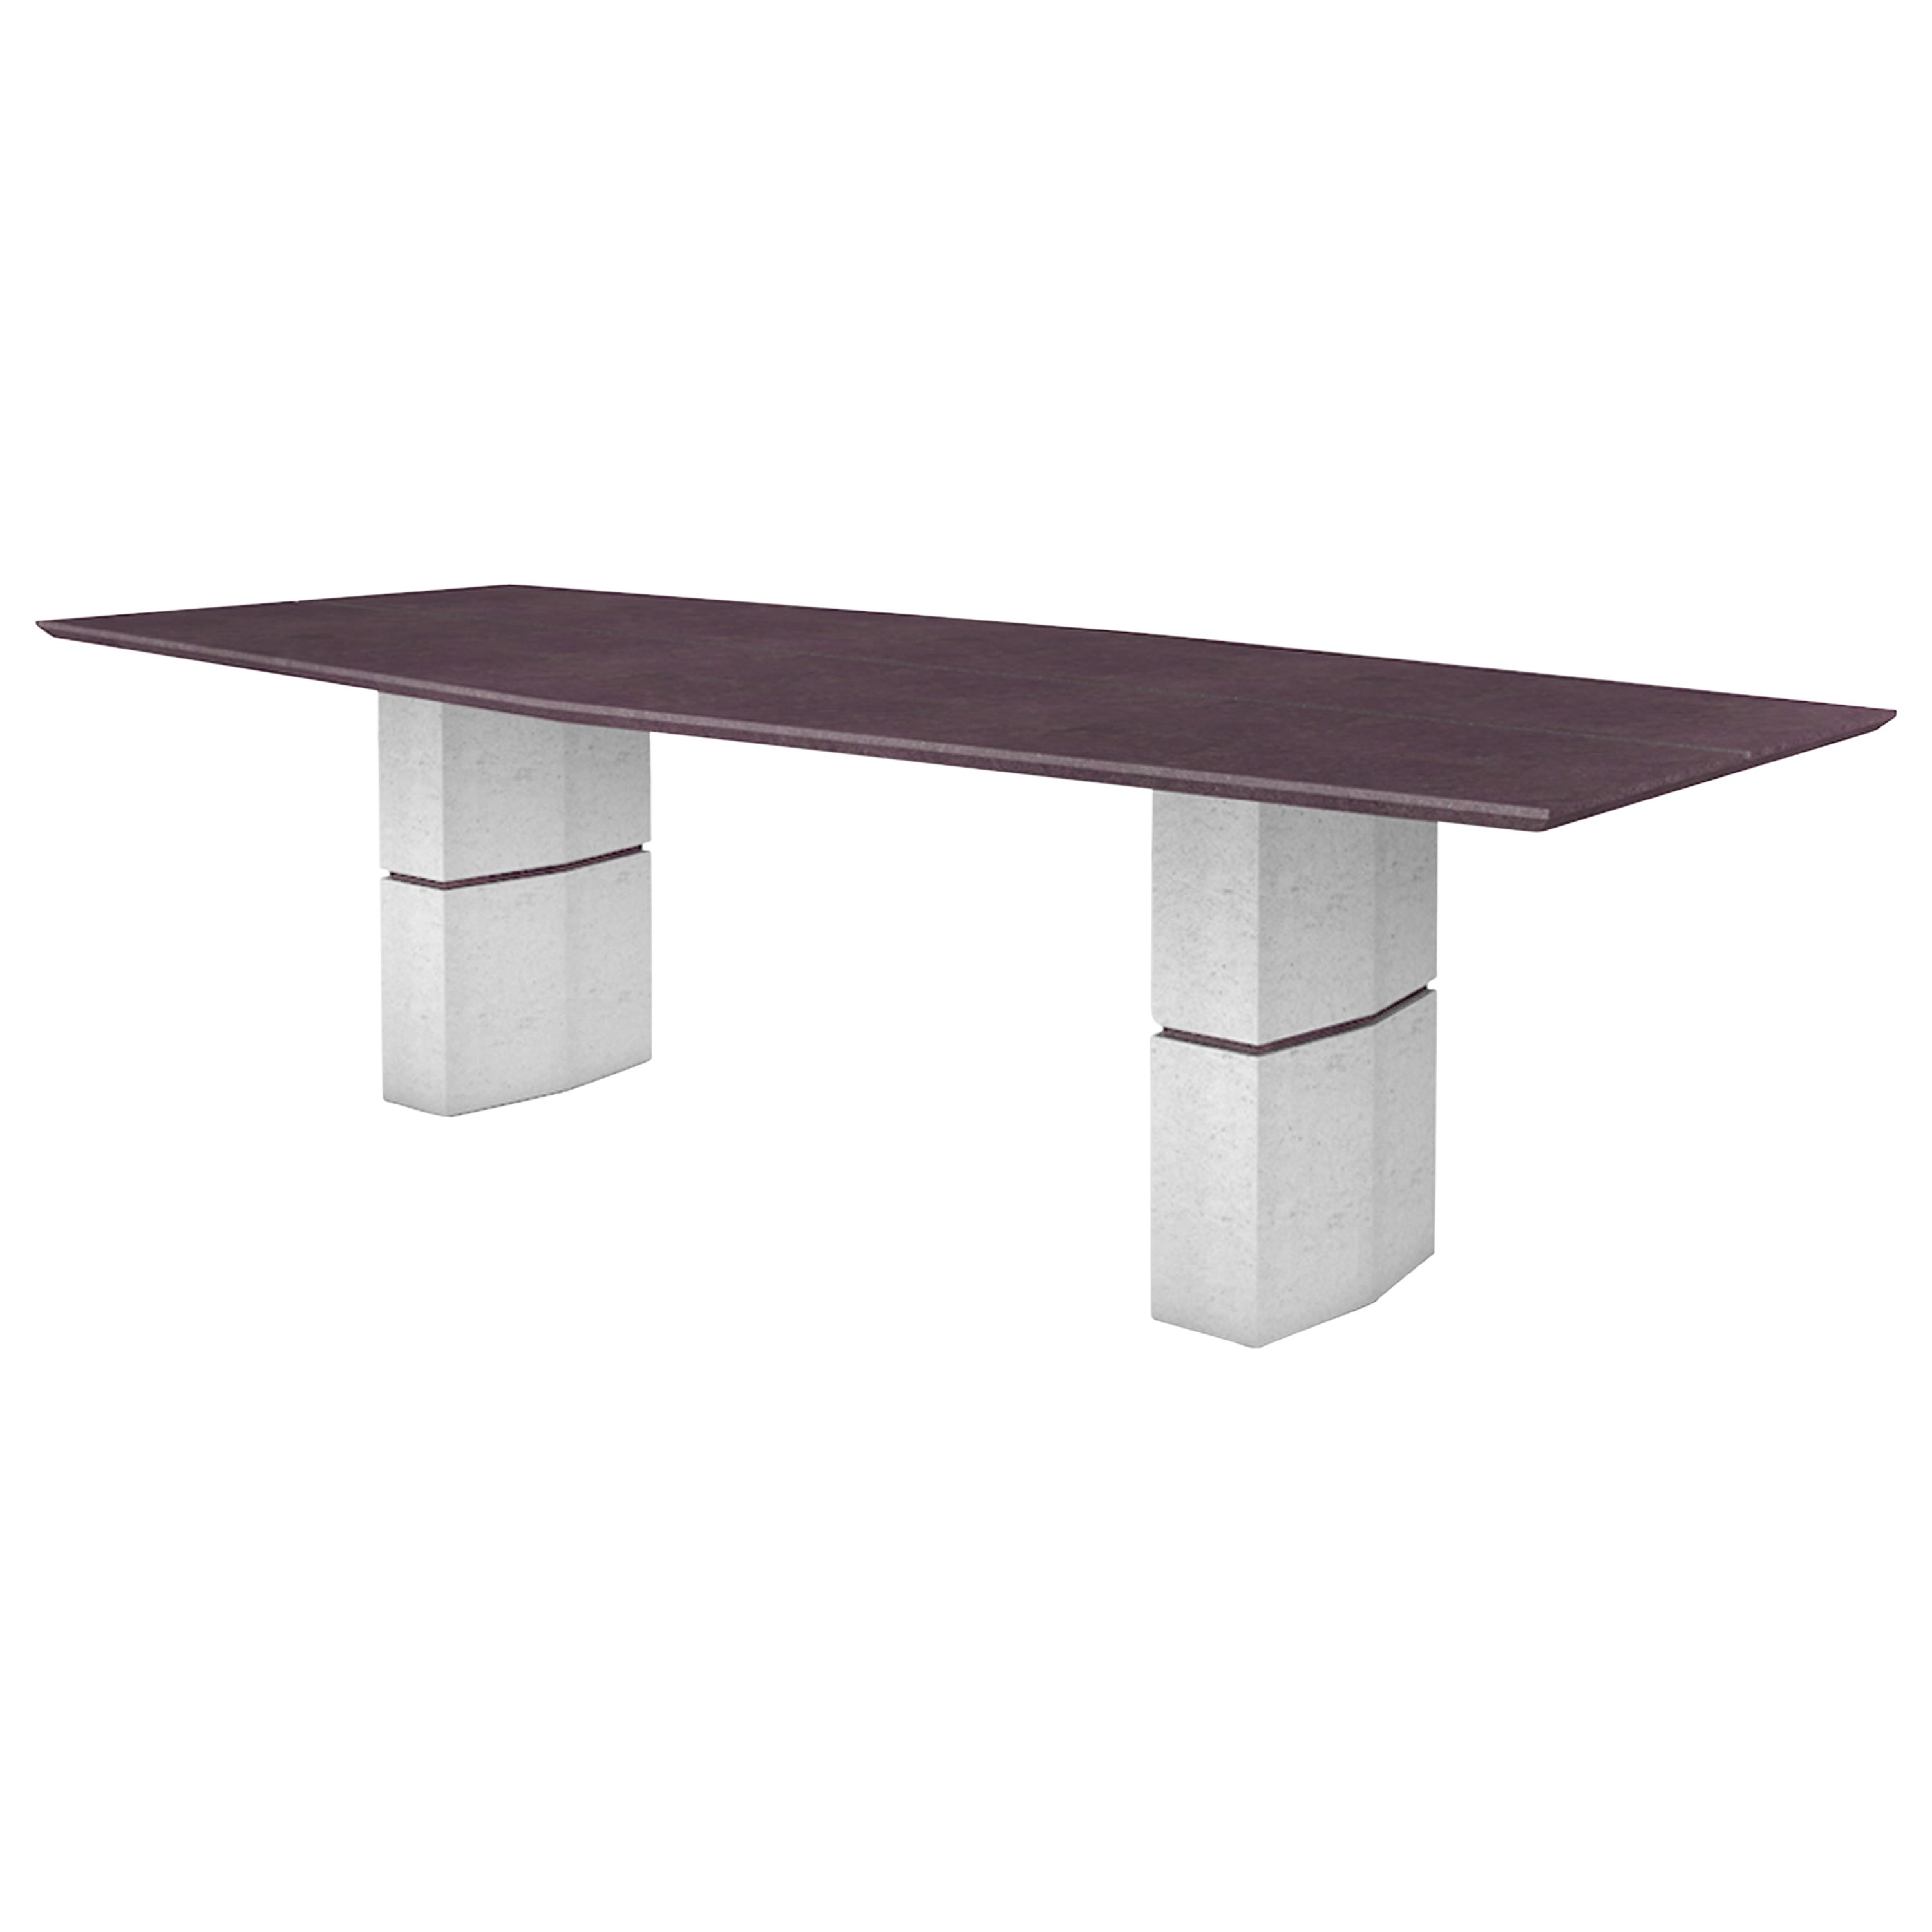 Frédéric Saulou, Unique Dining Table in Purple Slate